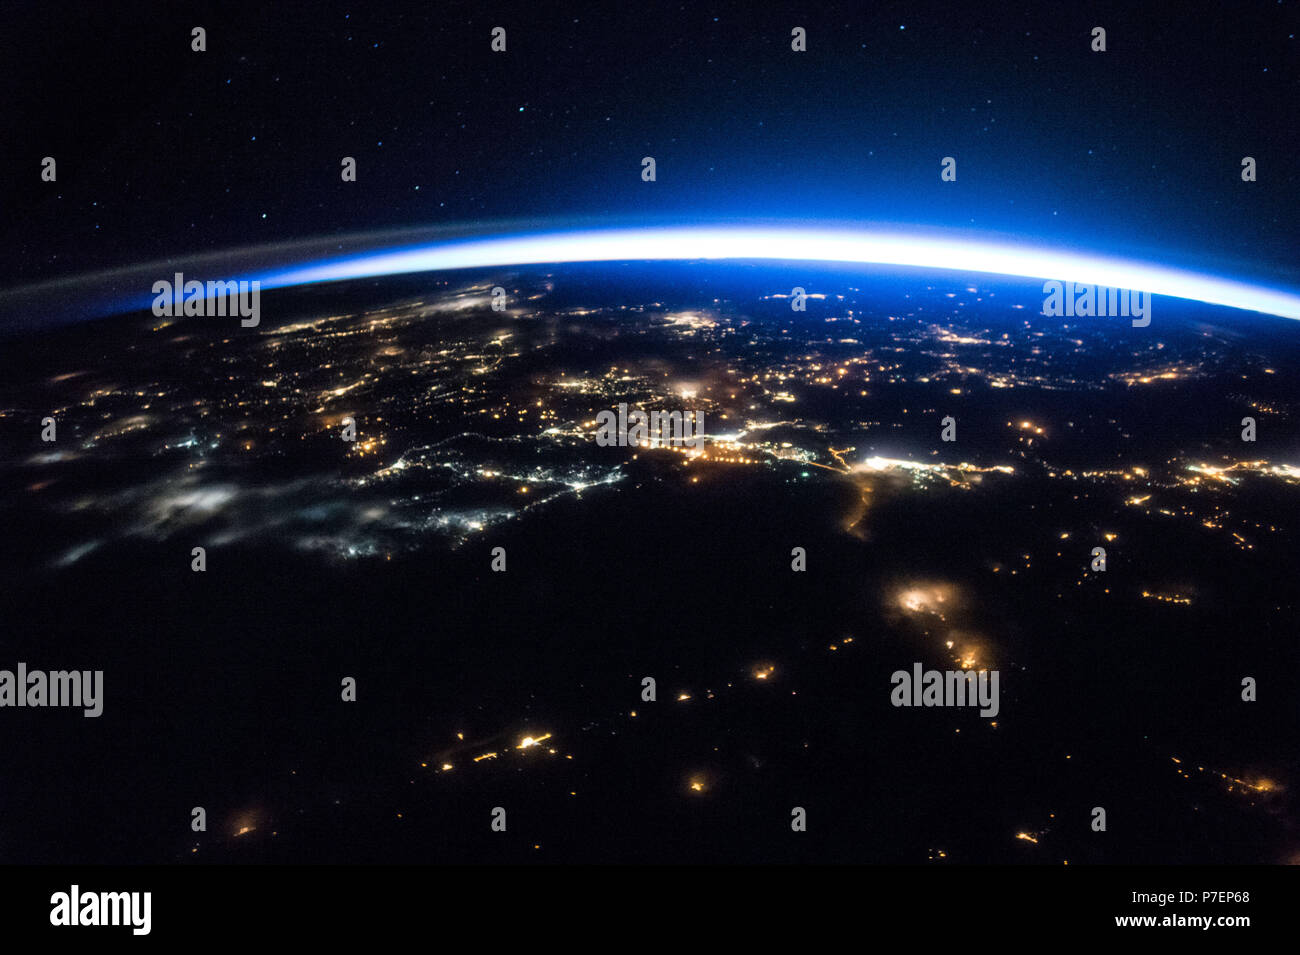 The International Space Station continues its orbit around the Earth as Expedition 50 astronauts captured this night image of sparkling cities and a sliver of daylight framing the northern hemisphere. - Stock Image